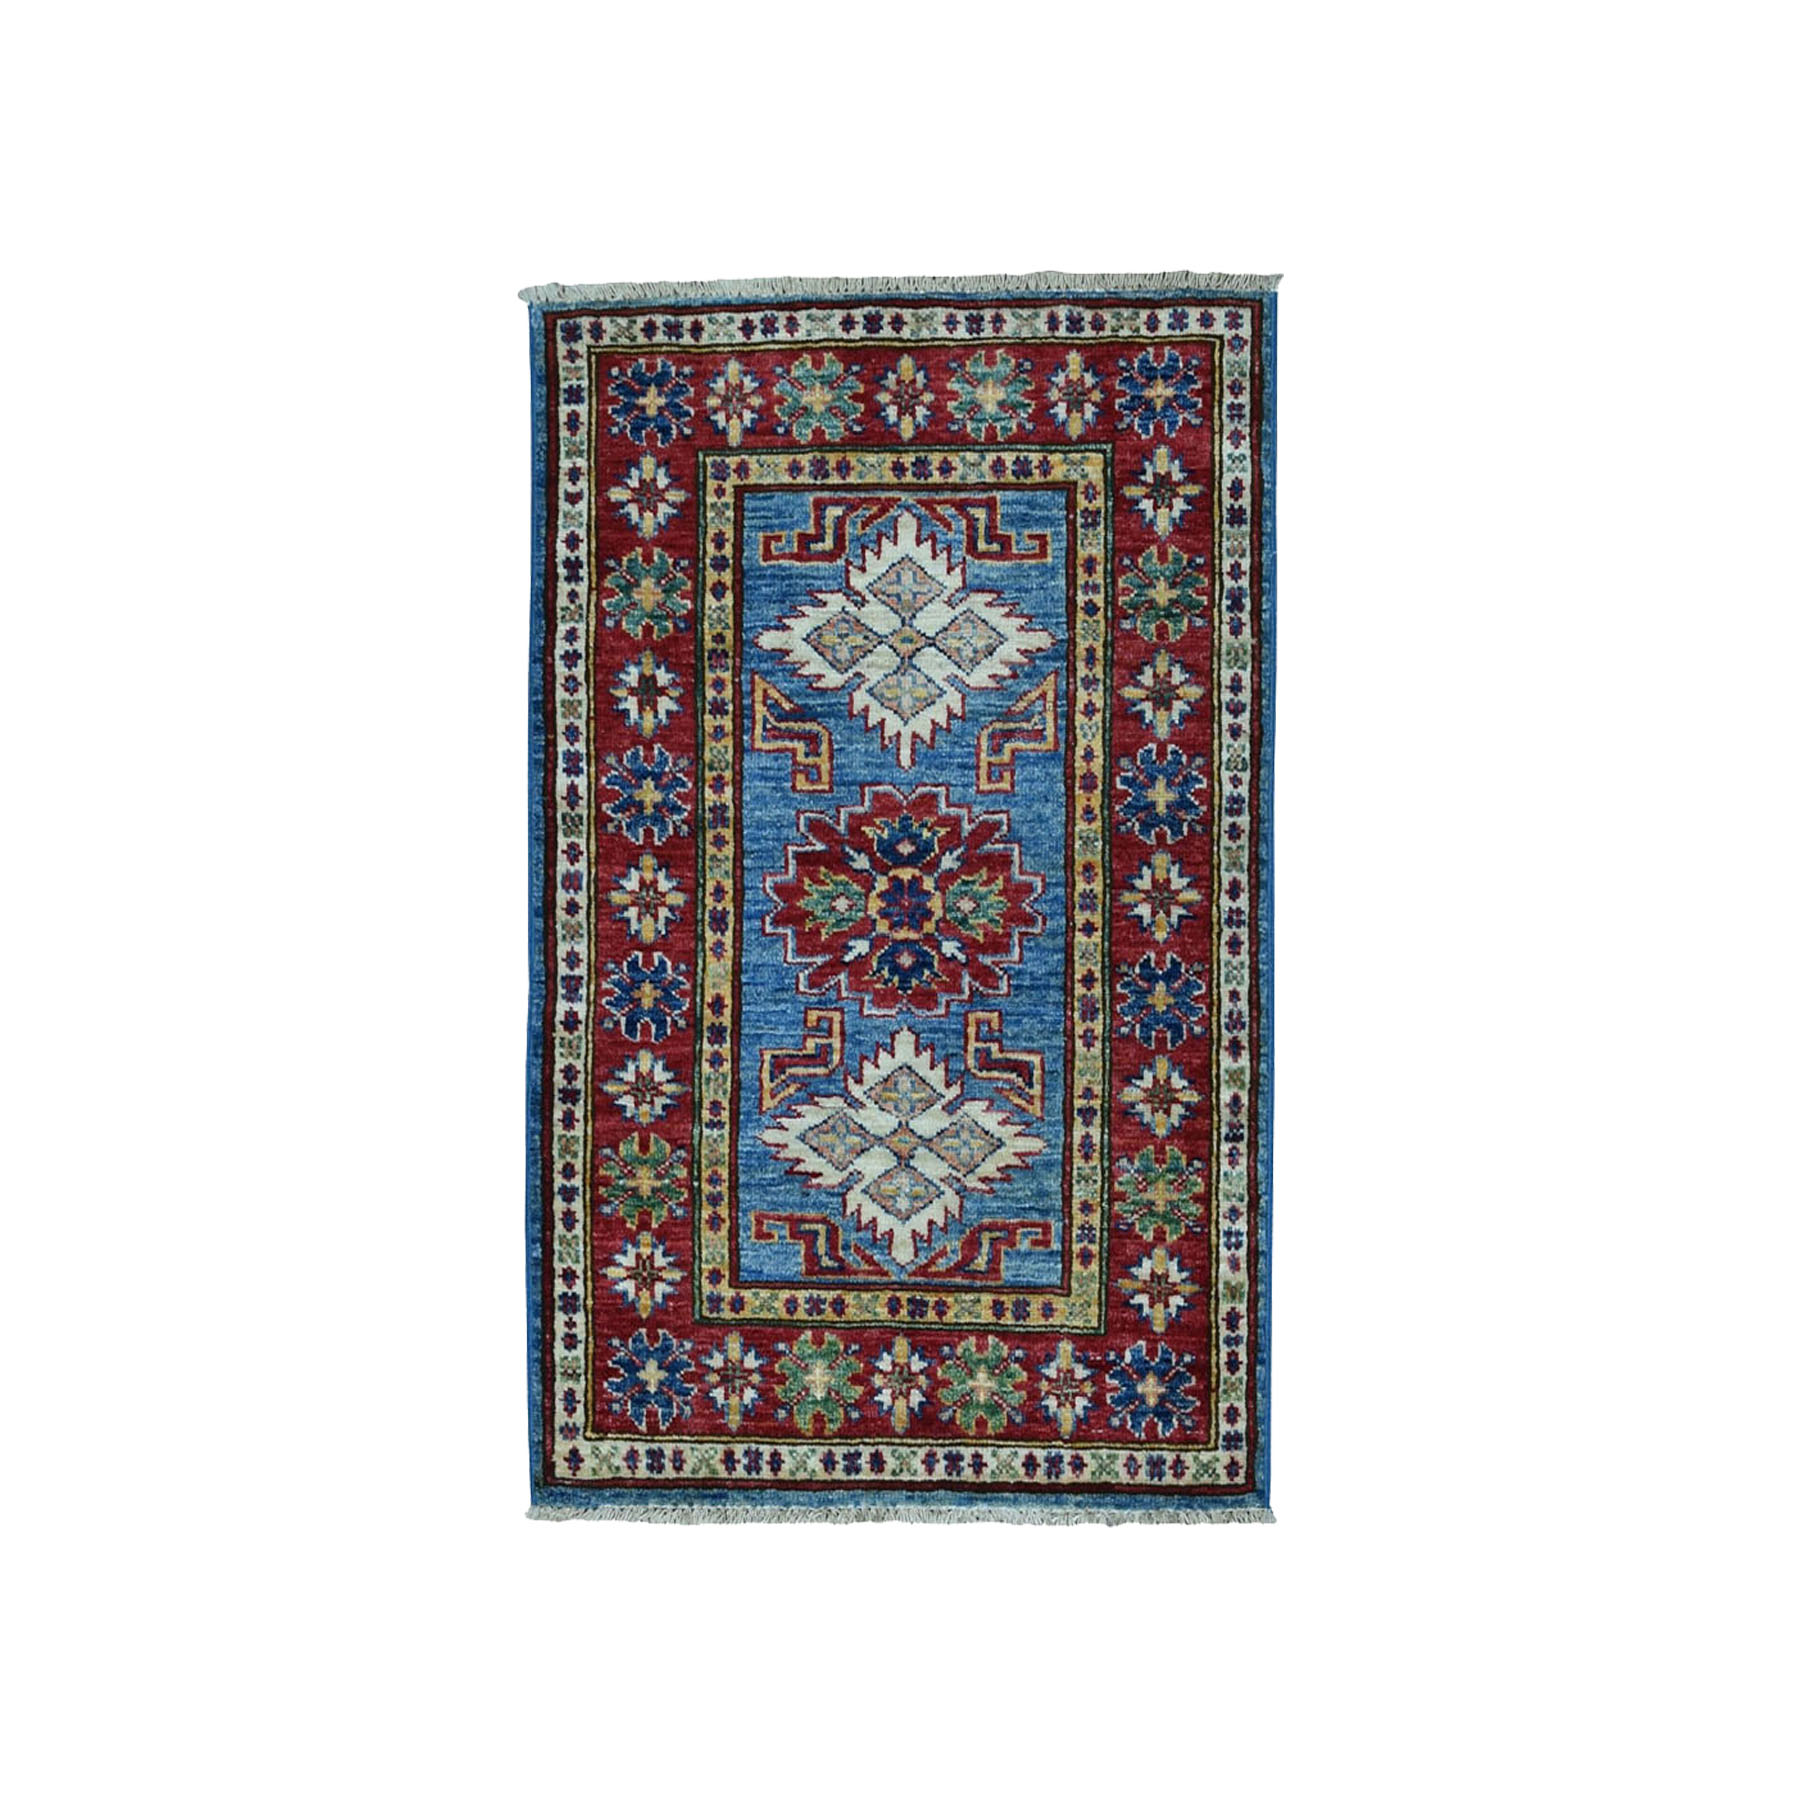 "2'1""x3' Red Super Kazak Pure Wool Geometric Design Hand Woven Oriental Rug"